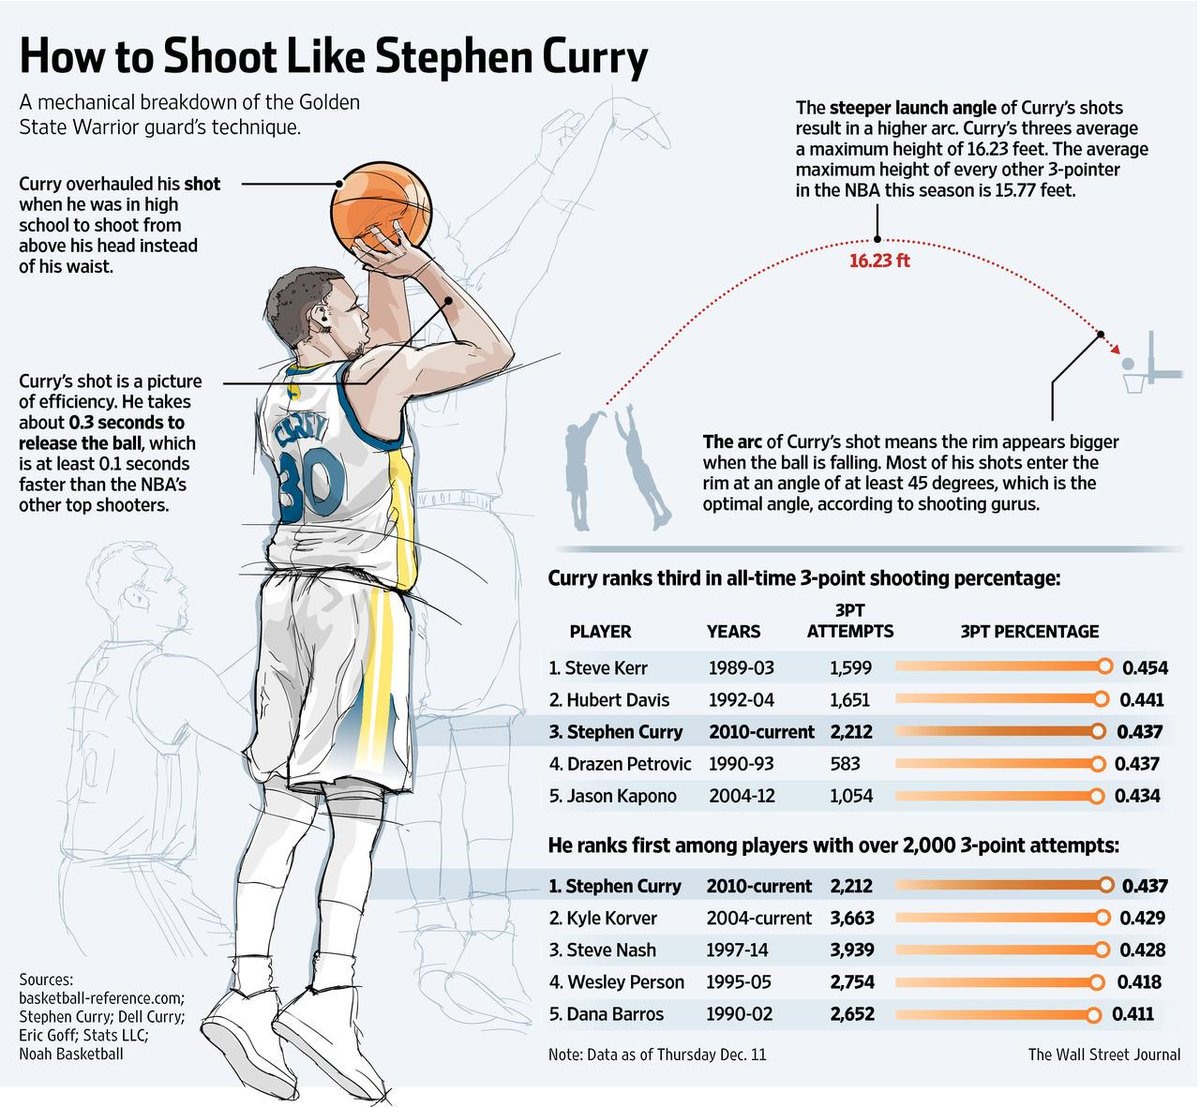 How do you shoot like Stephen Curry? http://t.co/Zgk2gWr9xB http://t.co/WVe4FYroFJ